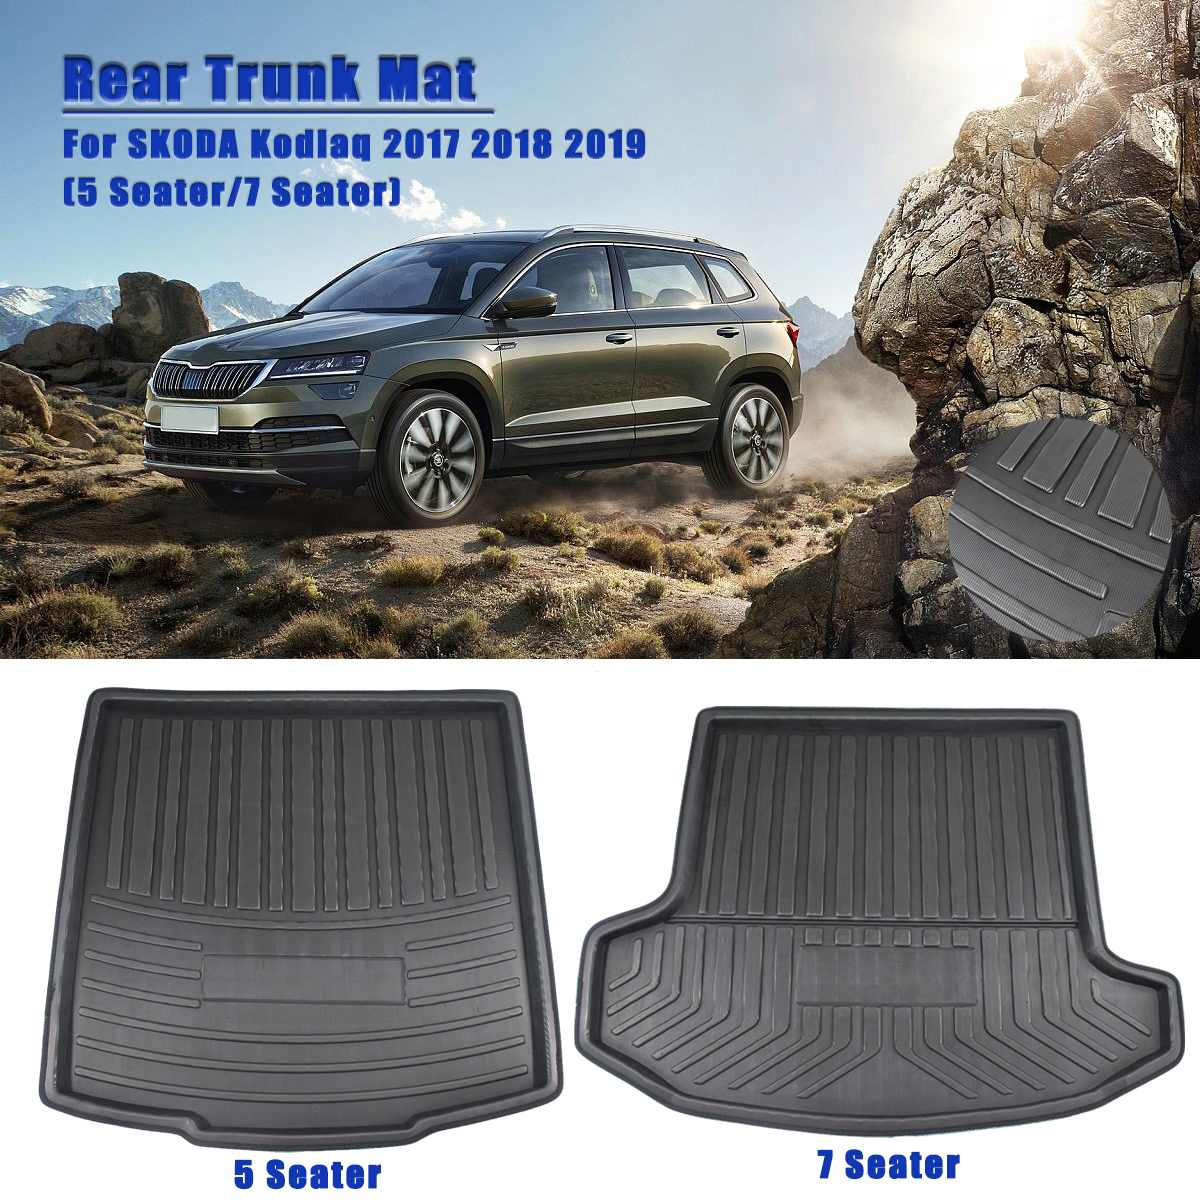 Cargo Liner Boot Tray Rear Trunk Cover Matt Mat Floor Carpet Kick Pad For SKODA Kodiaq 5/7 Seat Seater 2017 2018 2019